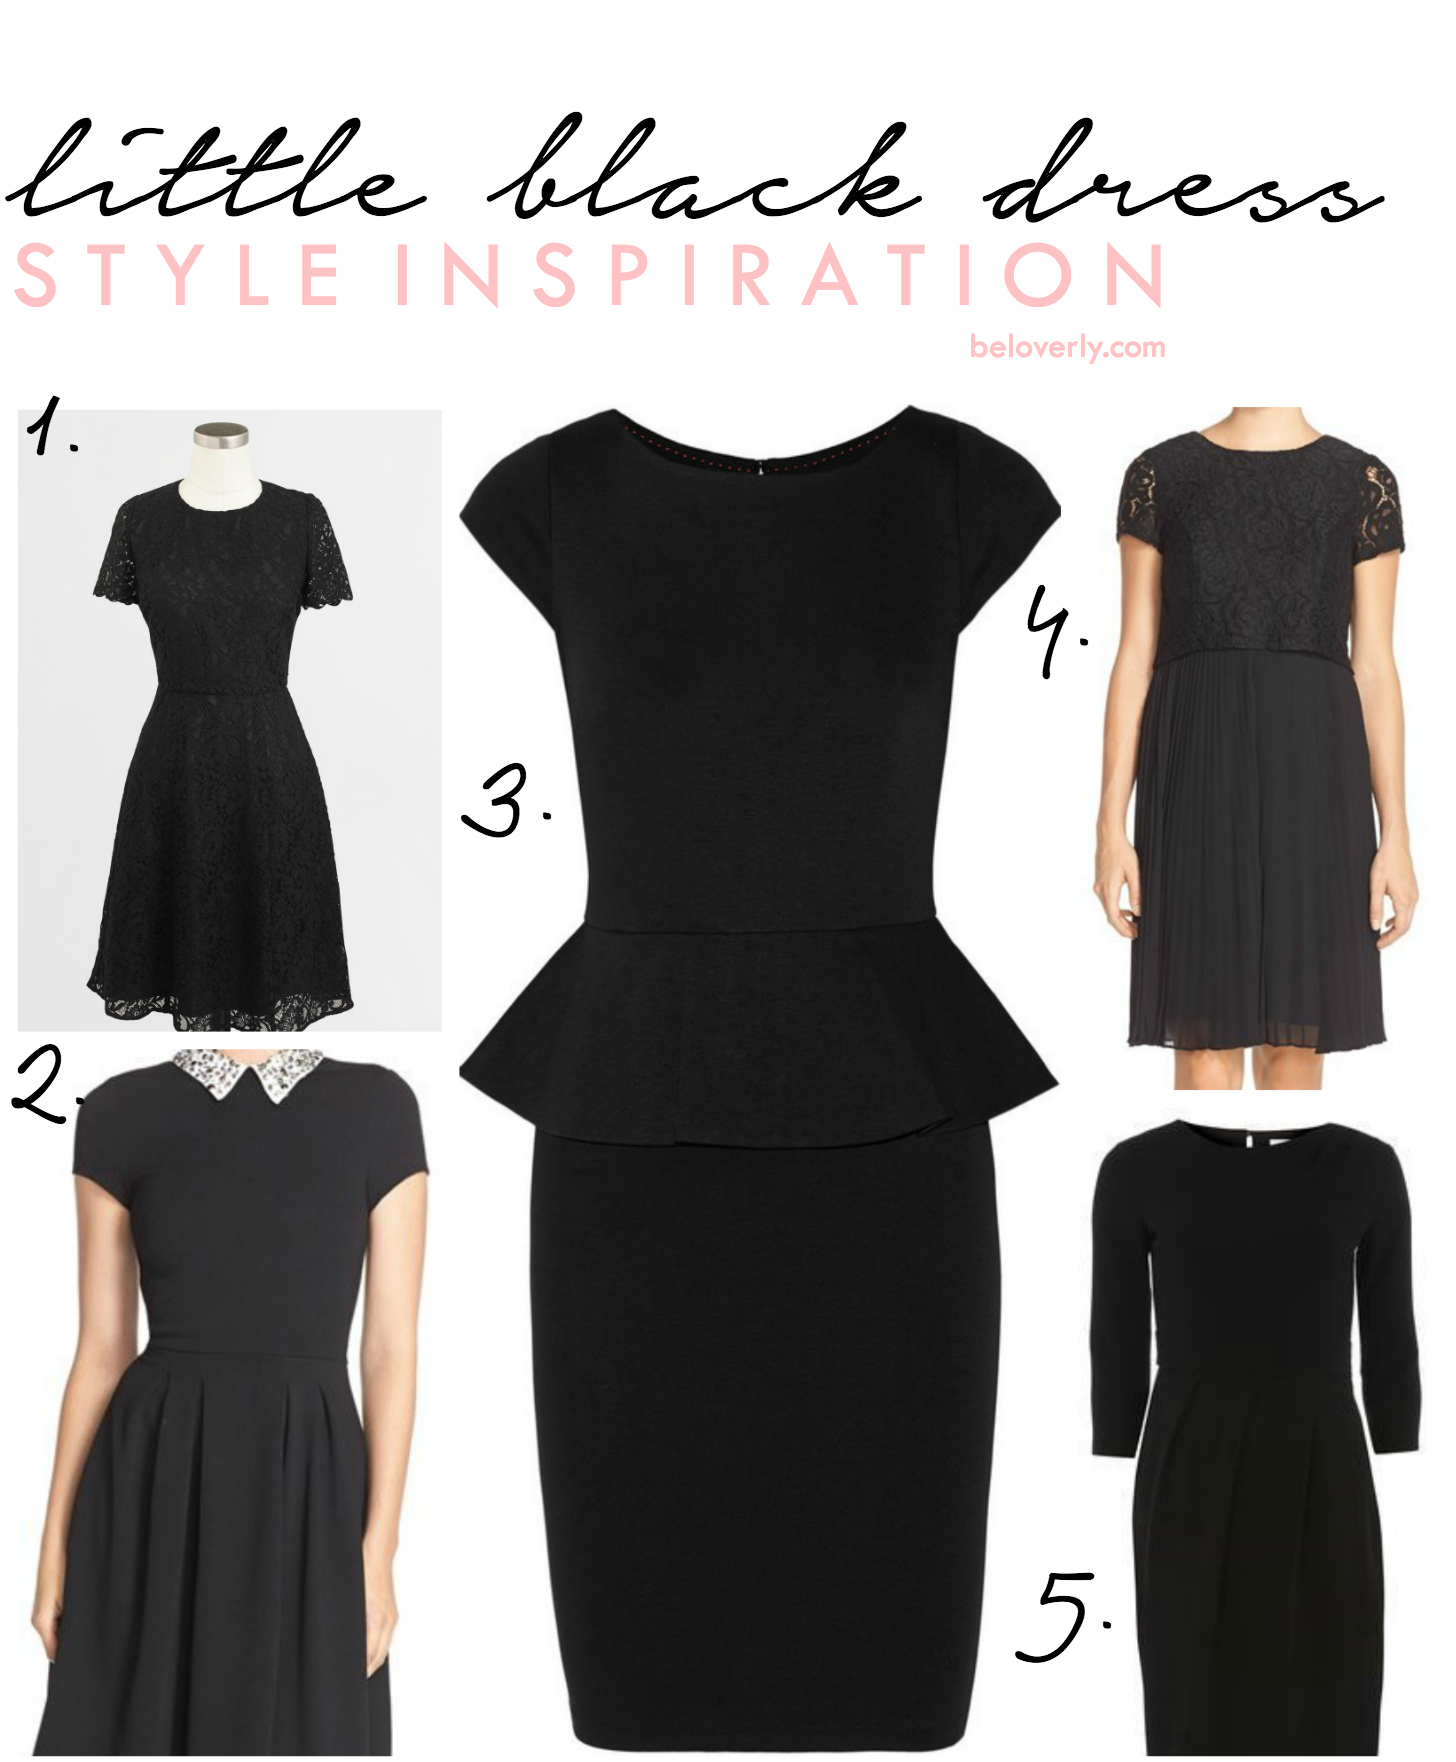 littleblackdressstyleinspiration